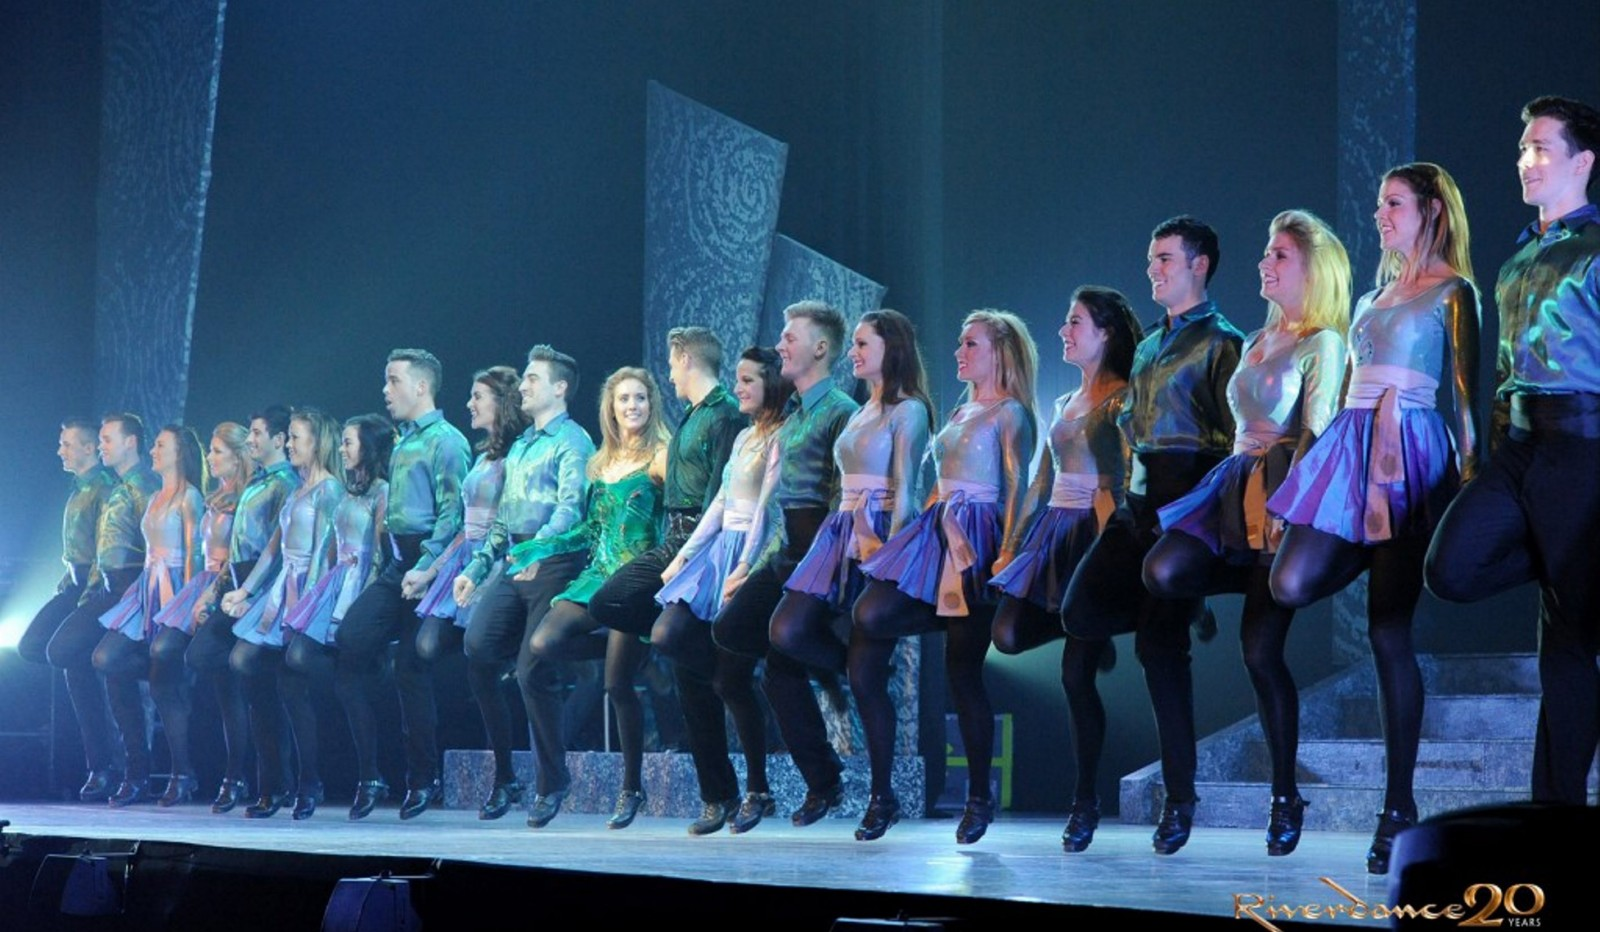 """""""Riverdance - The 20th Anniversary World Tour"""" will be at Shea's Performing Arts Center from May 31 to June 2."""